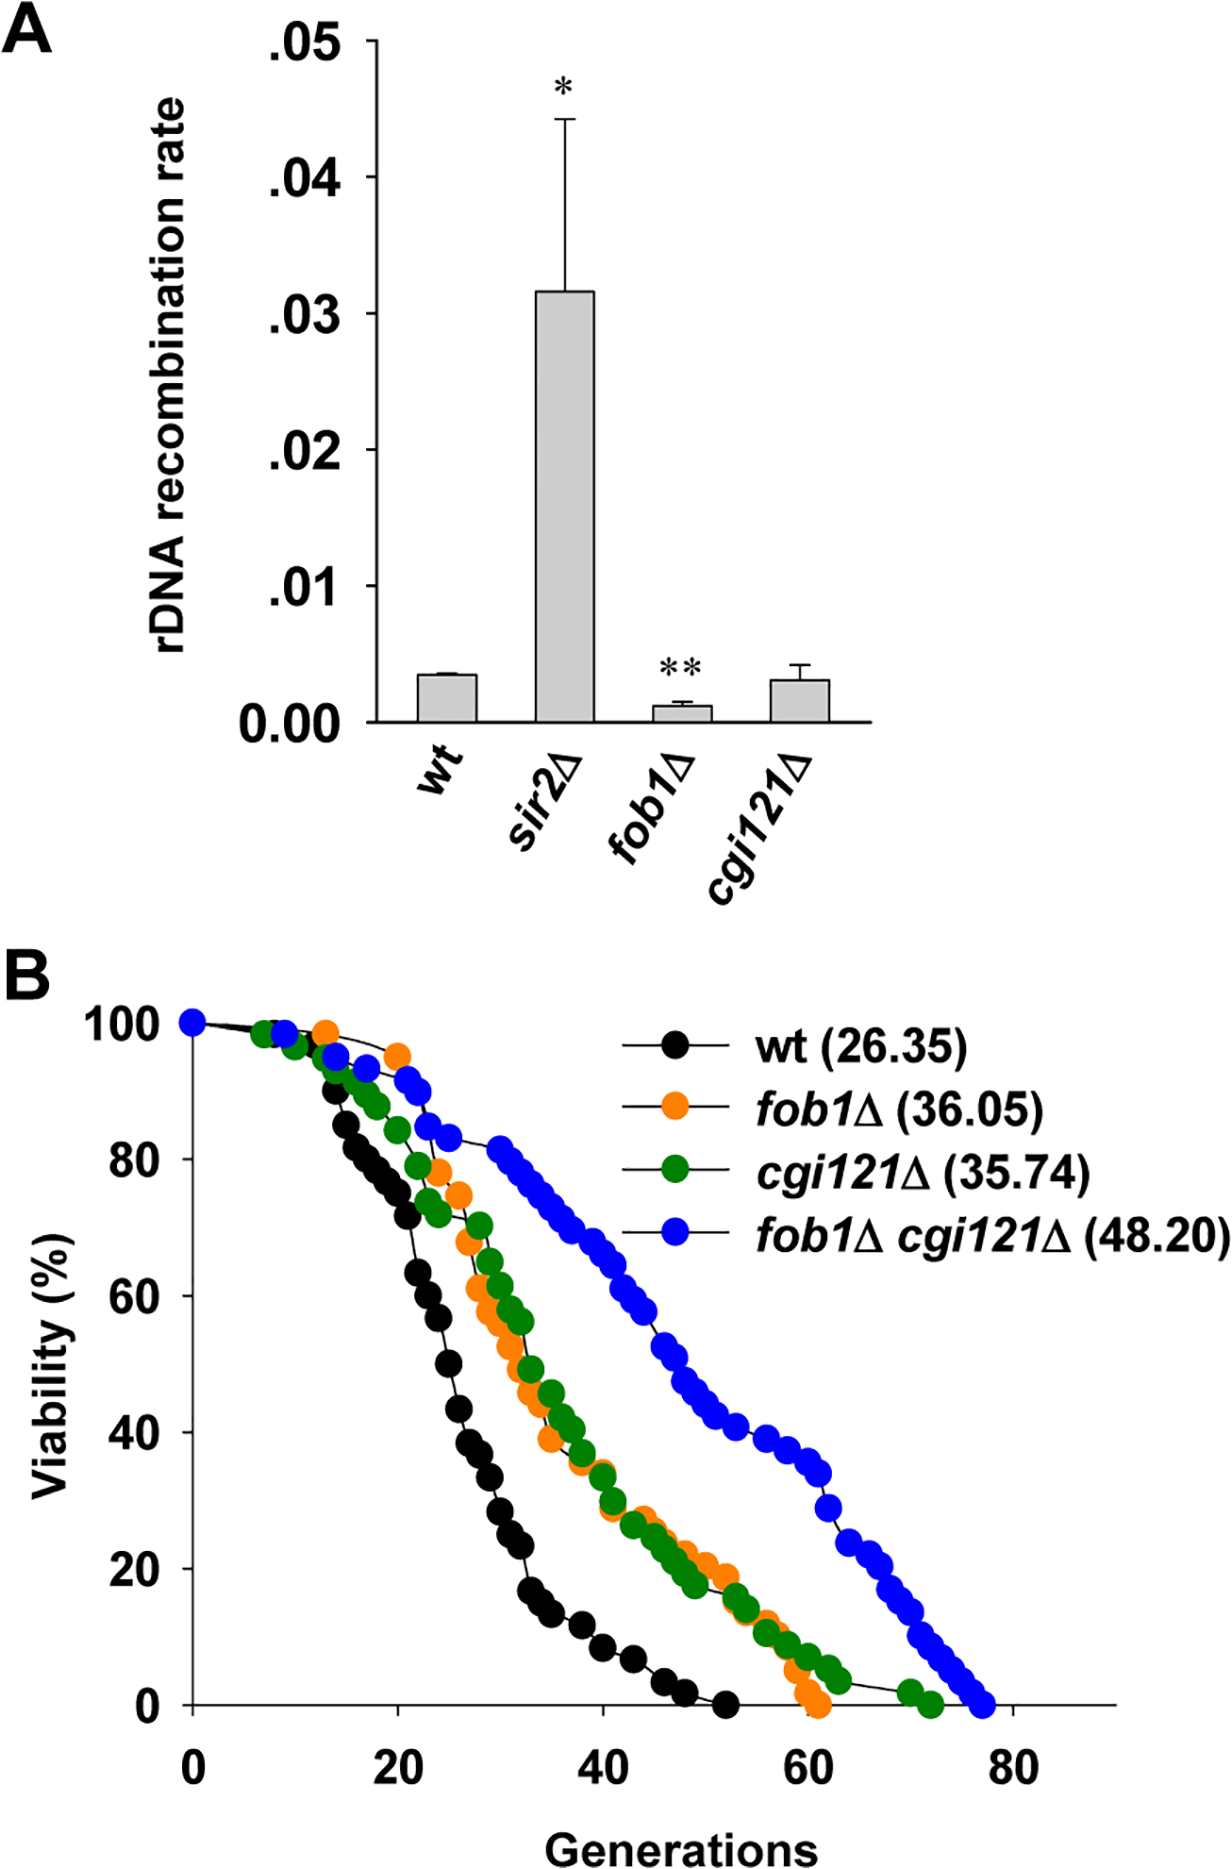 Cgi121 does not affect rDNA recombination and functions in parallel with Fob1 in aging regulation.